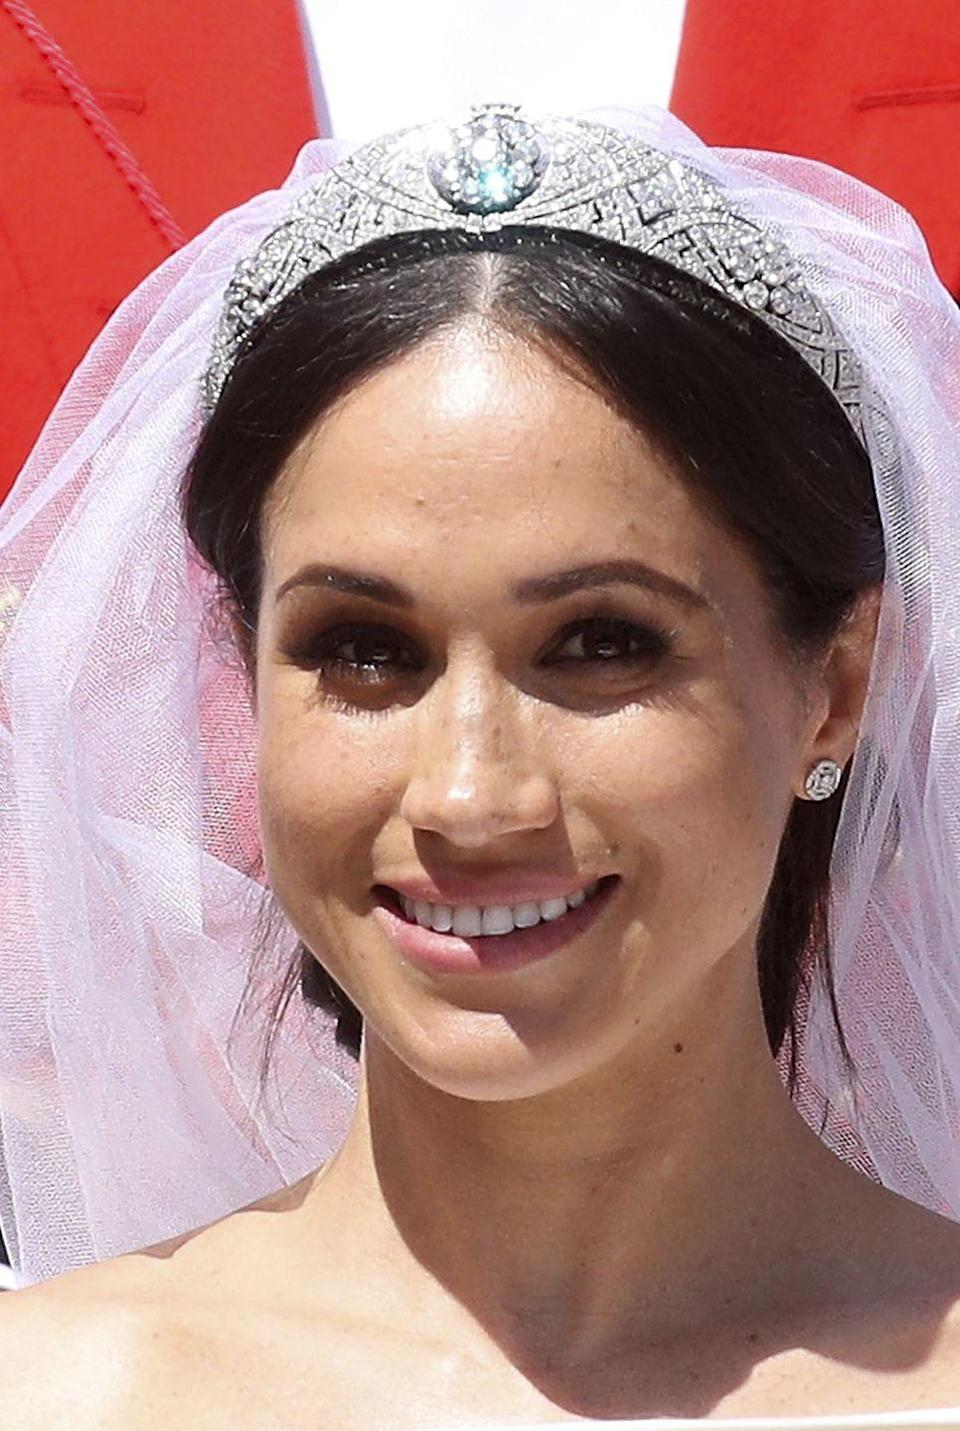 <p>The showstopping bandeau tiara worn by Meghan, Duchess of Sussex, on her wedding day was made by Garrard in 1925 for the Queen's grandmother, Queen Mary. It originally had a sapphire centerpiece, but it has since been changed to a diamond. It was loaned to Meghan by the Queen for her wedding day. The tiara was also worn by the late Princes Margaret, the Queen's sister.</p>